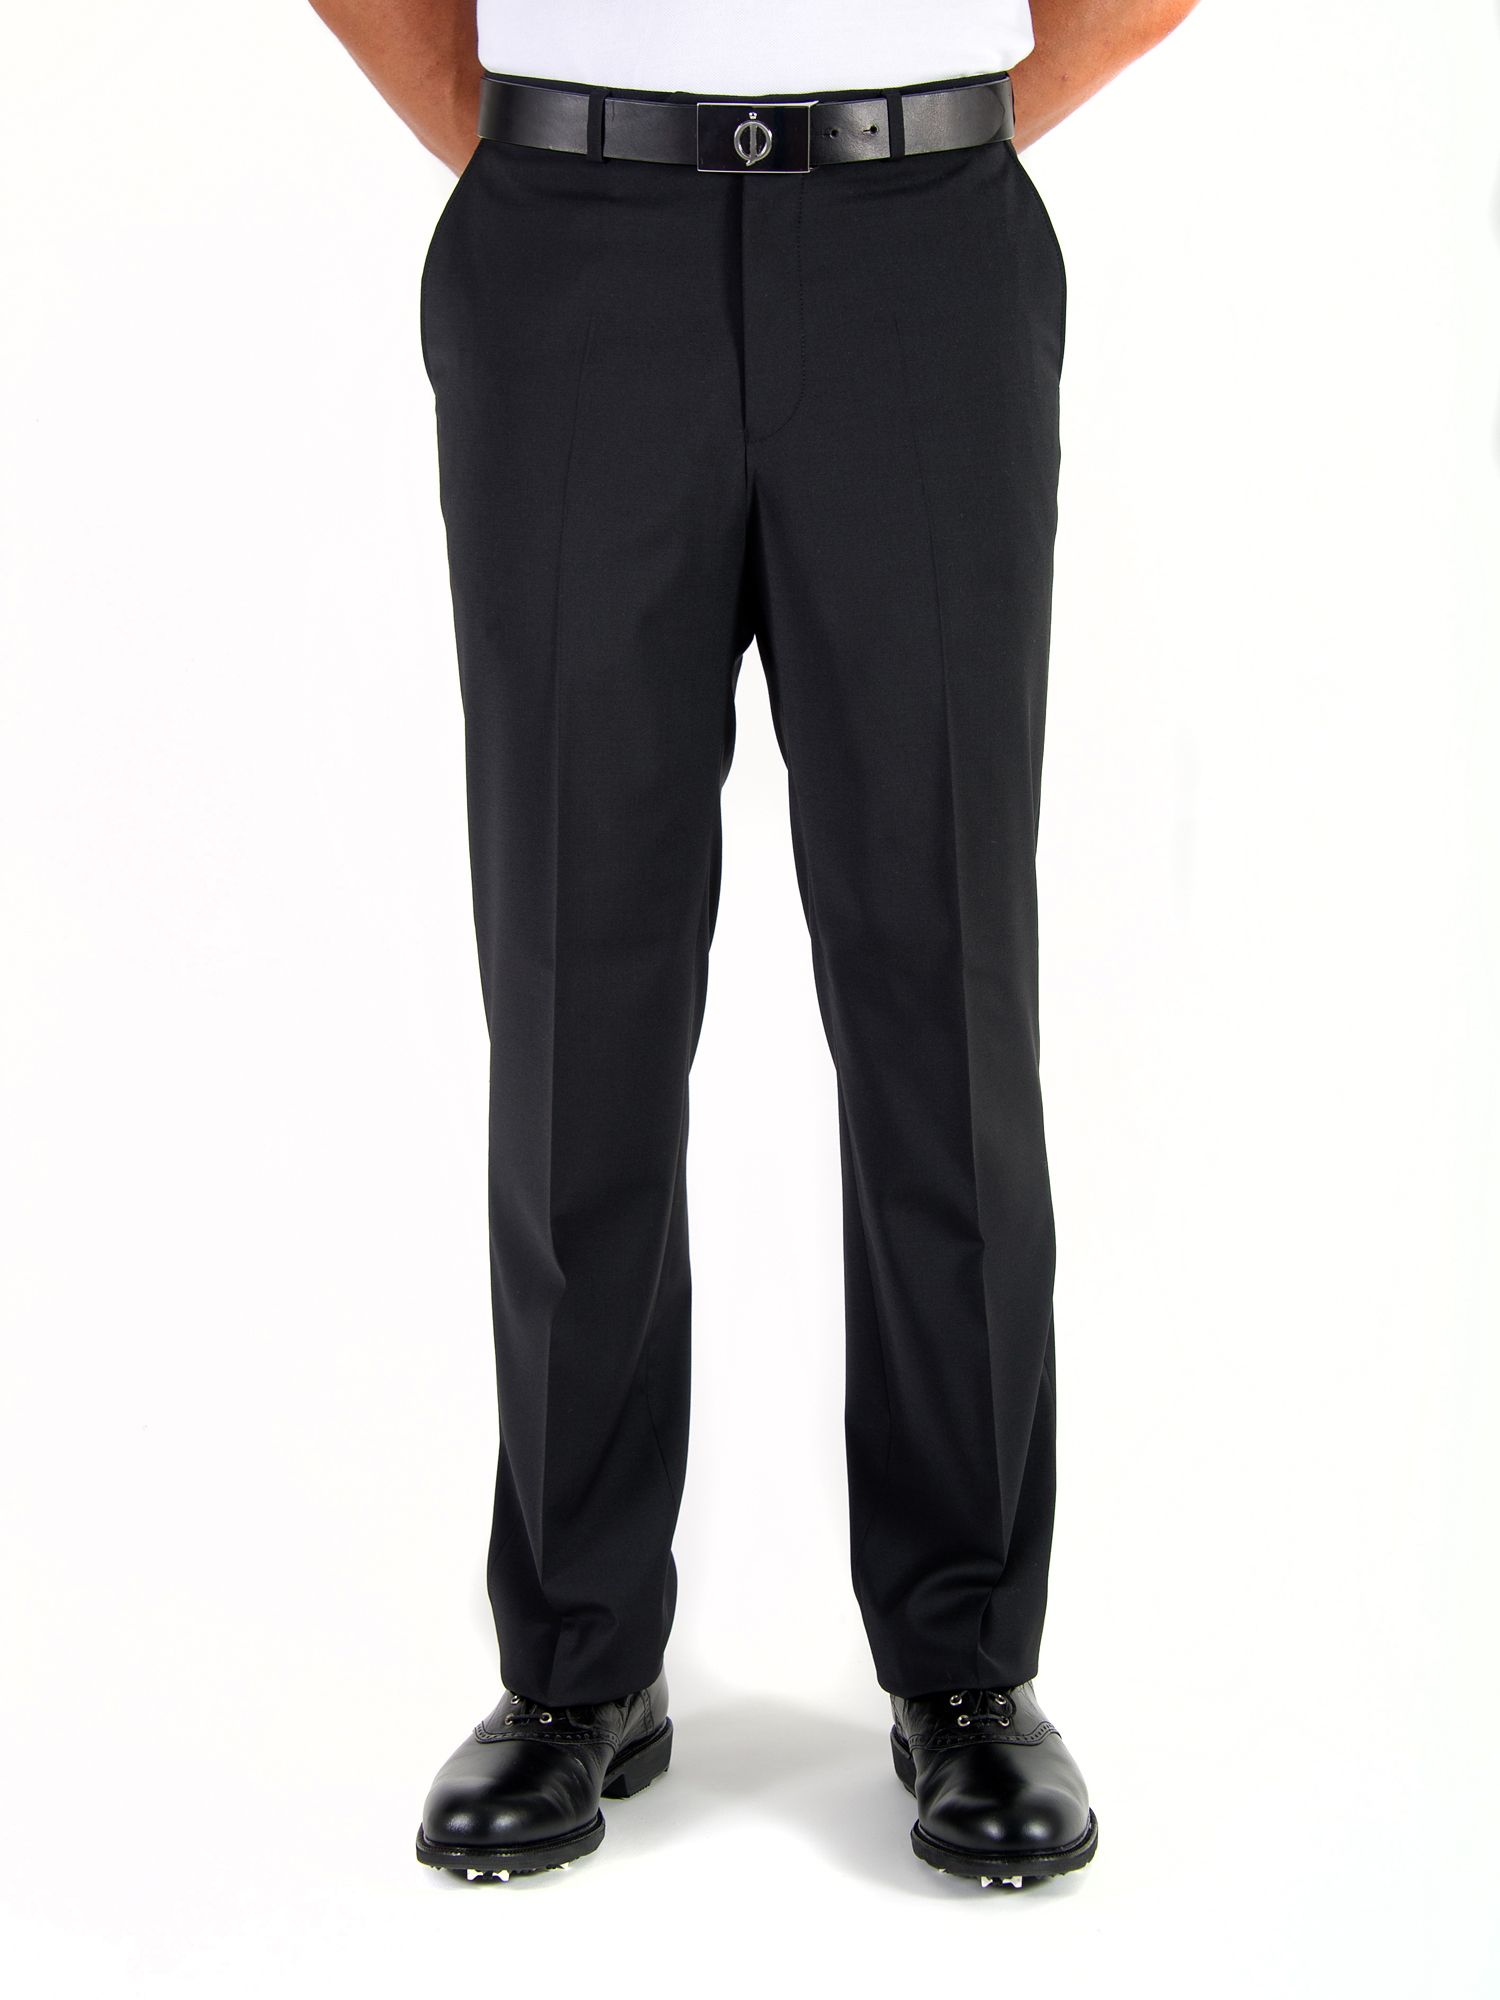 Greg performance trousers